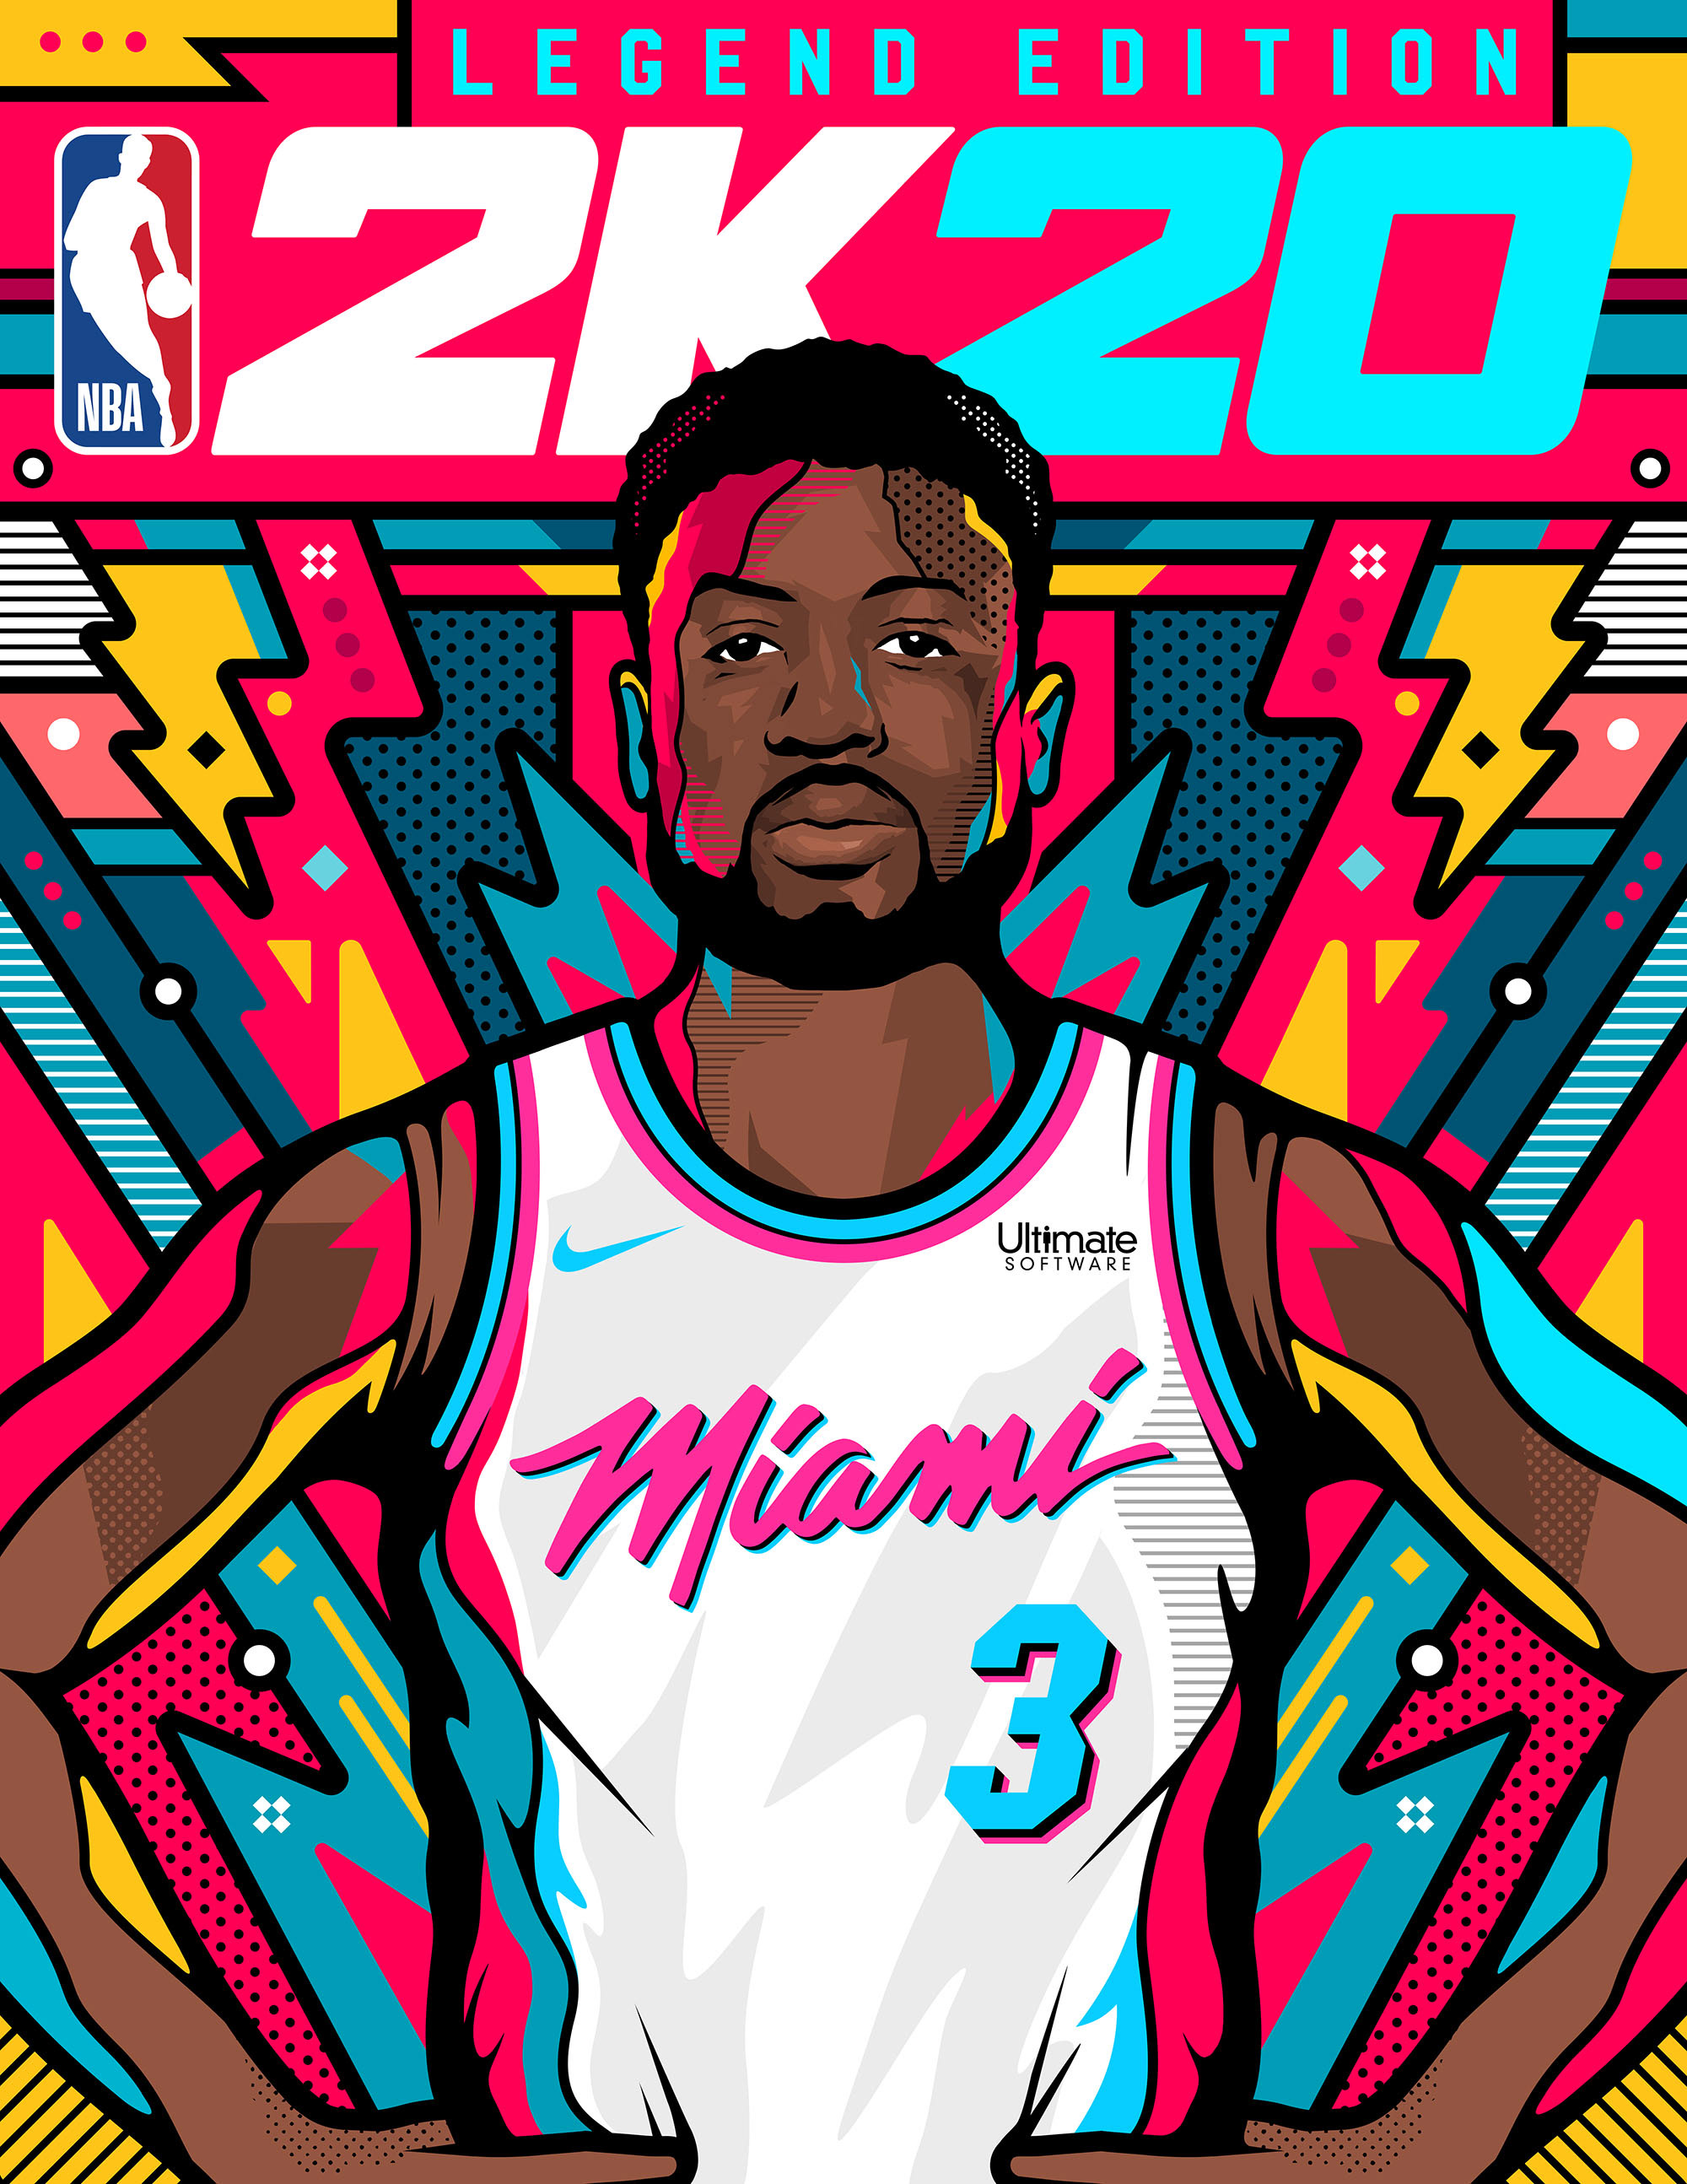 Nba2k20 Projects Photos Videos Logos Illustrations And Branding On Behance